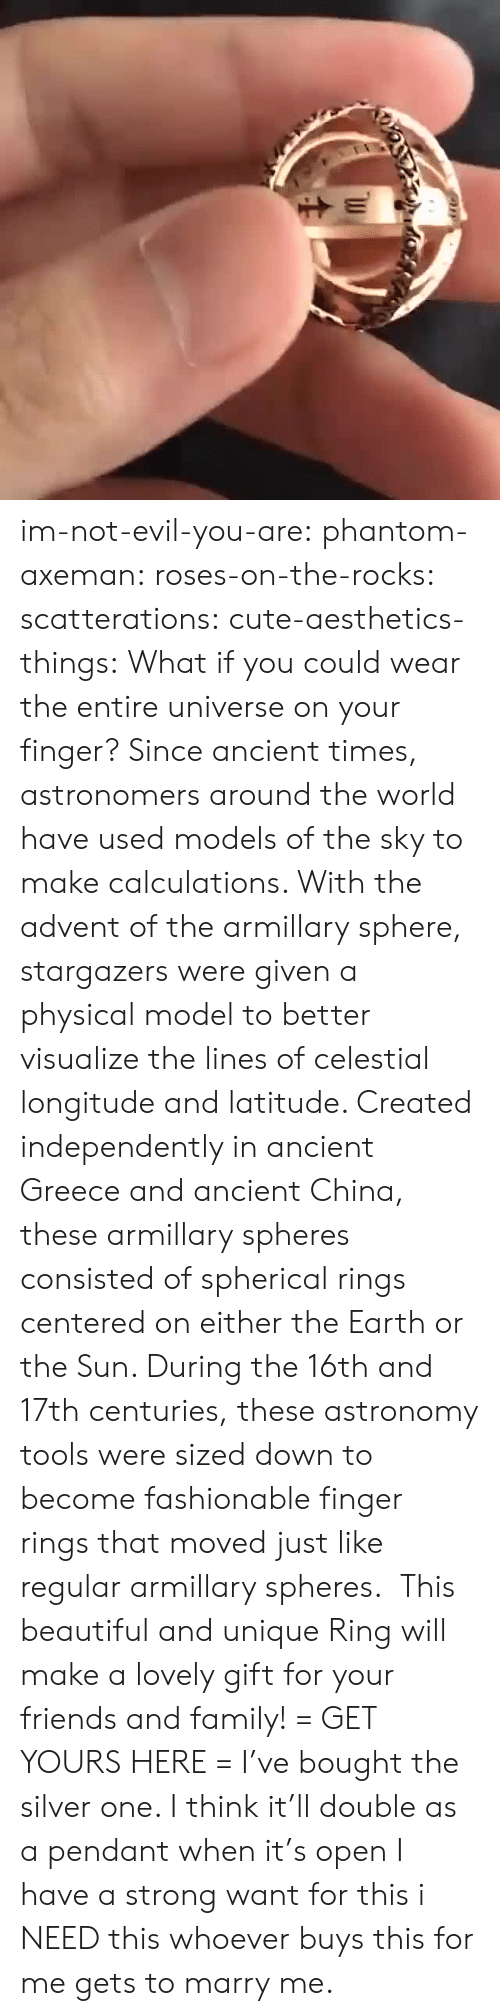 Beautiful, Cute, and Family: im-not-evil-you-are:  phantom-axeman: roses-on-the-rocks:  scatterations:   cute-aesthetics-things:  What if you could wear the entire universe on your finger? Since ancient times, astronomers around the world have used models of the sky to make calculations. With the advent of the armillary sphere, stargazers were given a physical model to better visualize the lines of celestial longitude and latitude. Created independently in ancient Greece and ancient China, these armillary spheres consisted of spherical rings centered on either the Earth or the Sun. During the 16th and 17th centuries, these astronomy tools were sized down to become fashionable finger rings that moved just like regular armillary spheres. This beautiful and unique Ring will make a lovely gift for your friends and family! = GET YOURS HERE =   I've bought the silver one. I think it'll double as a pendant when it's open    I have a strong want for this   i NEED this  whoever buys this for me gets to marry me.